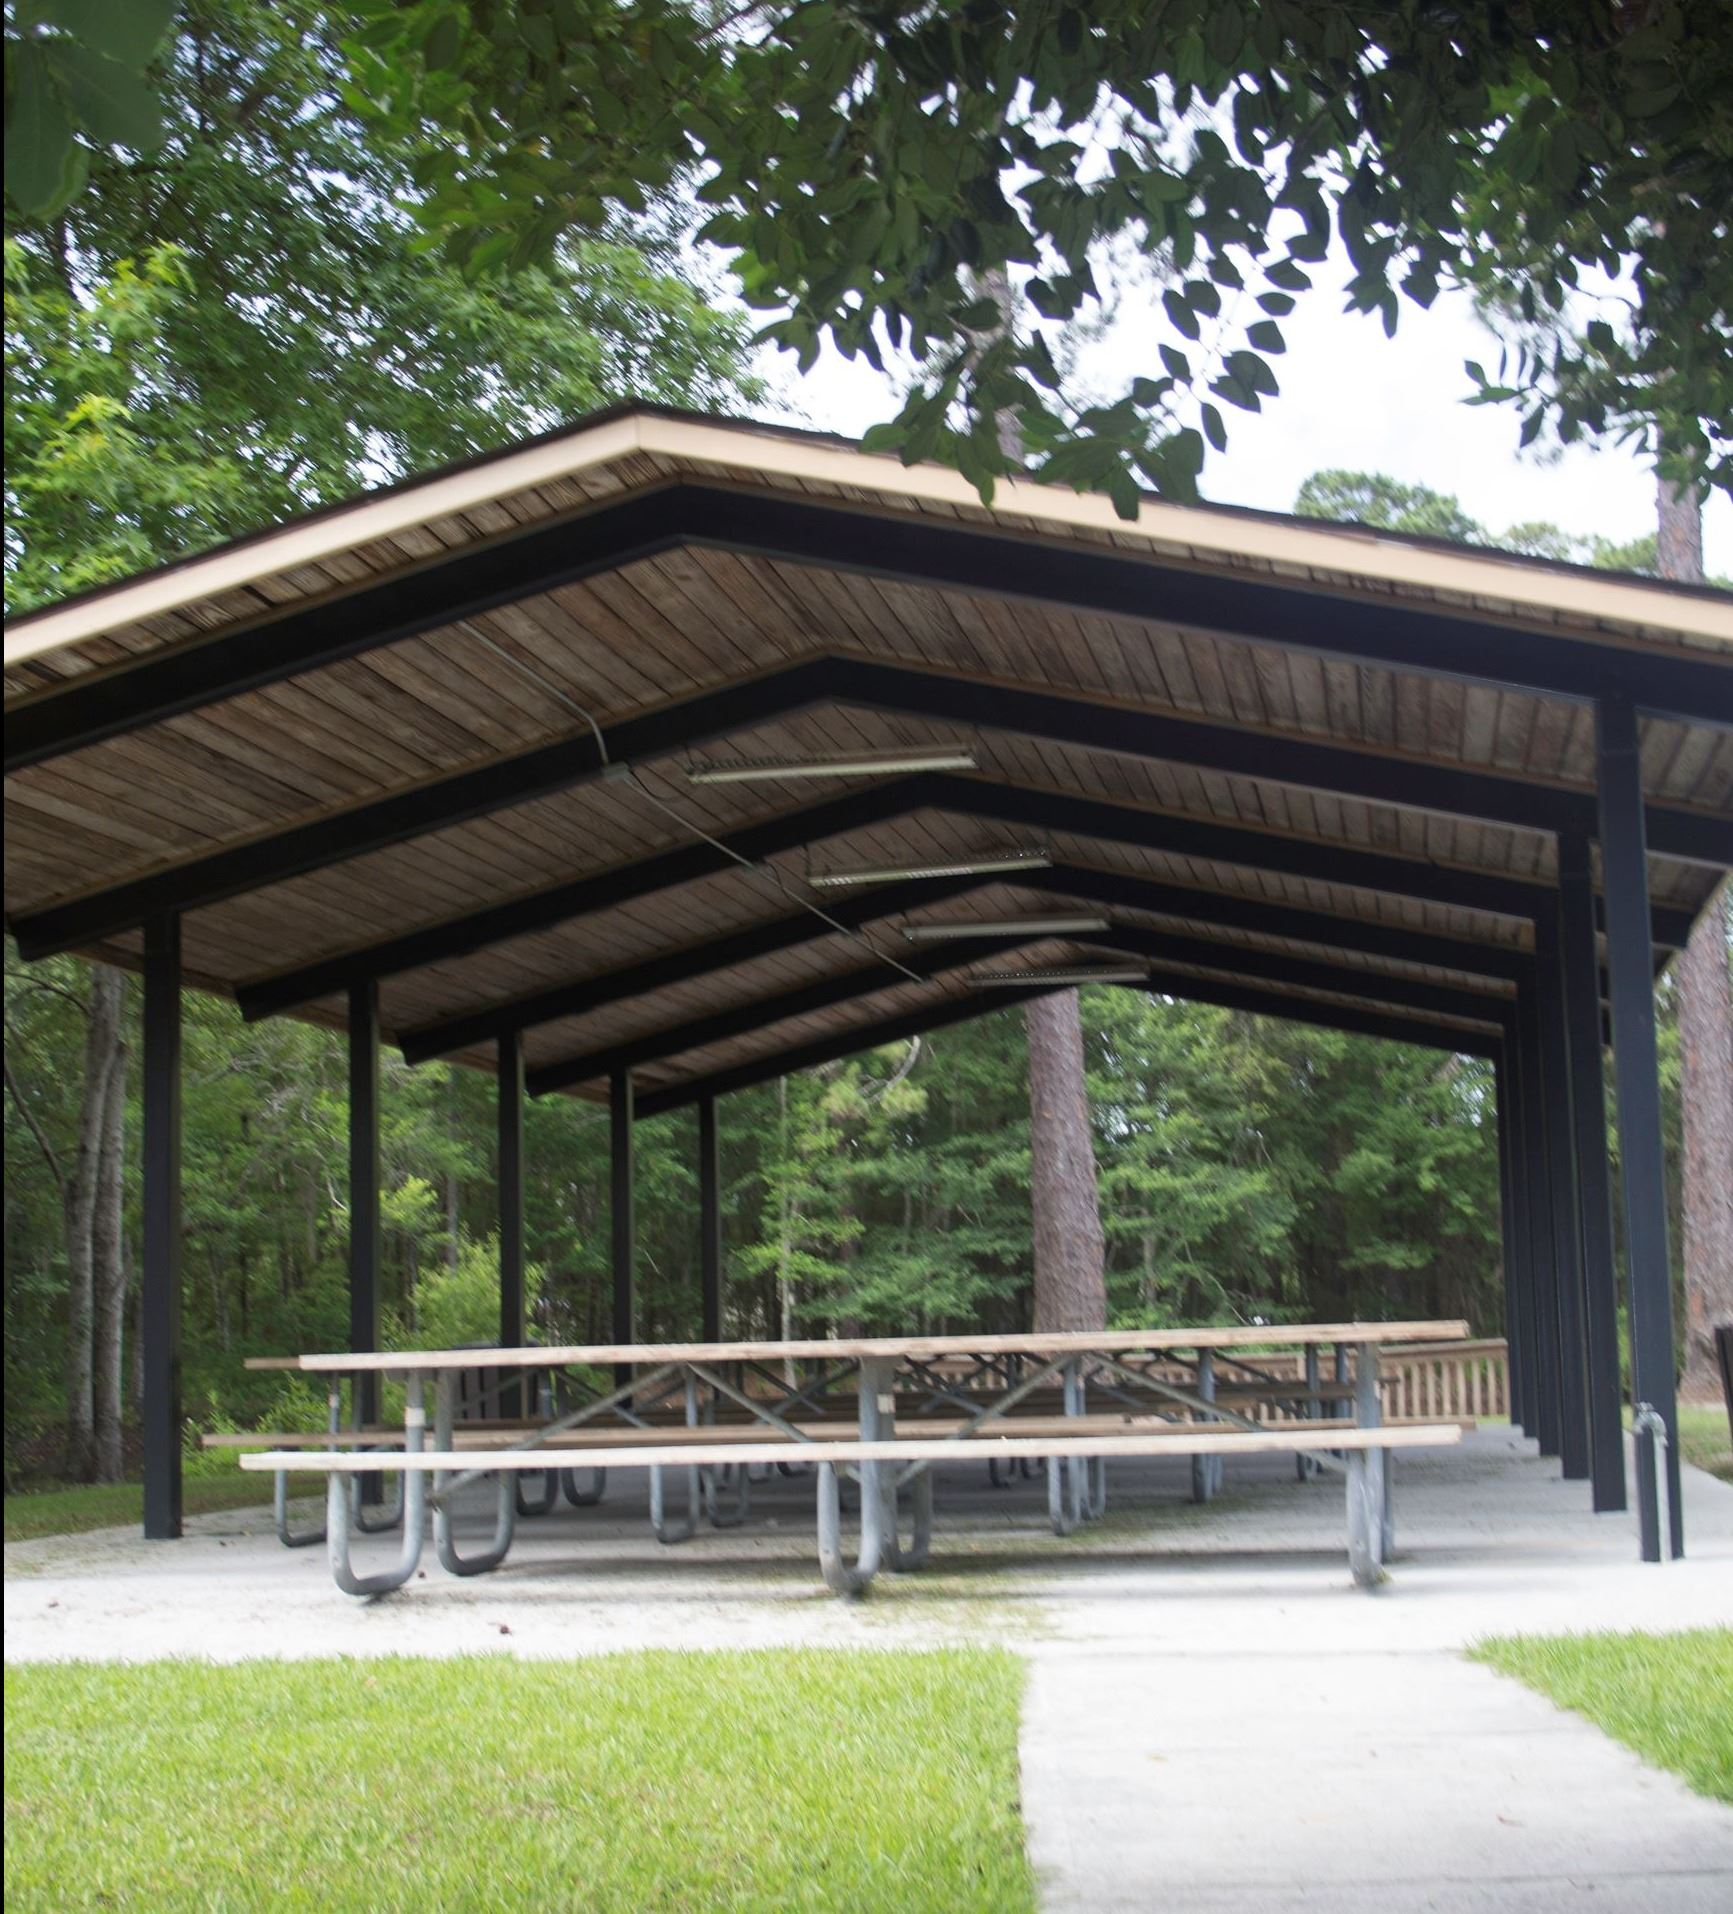 An image of a picnic shelter with picnic tables.